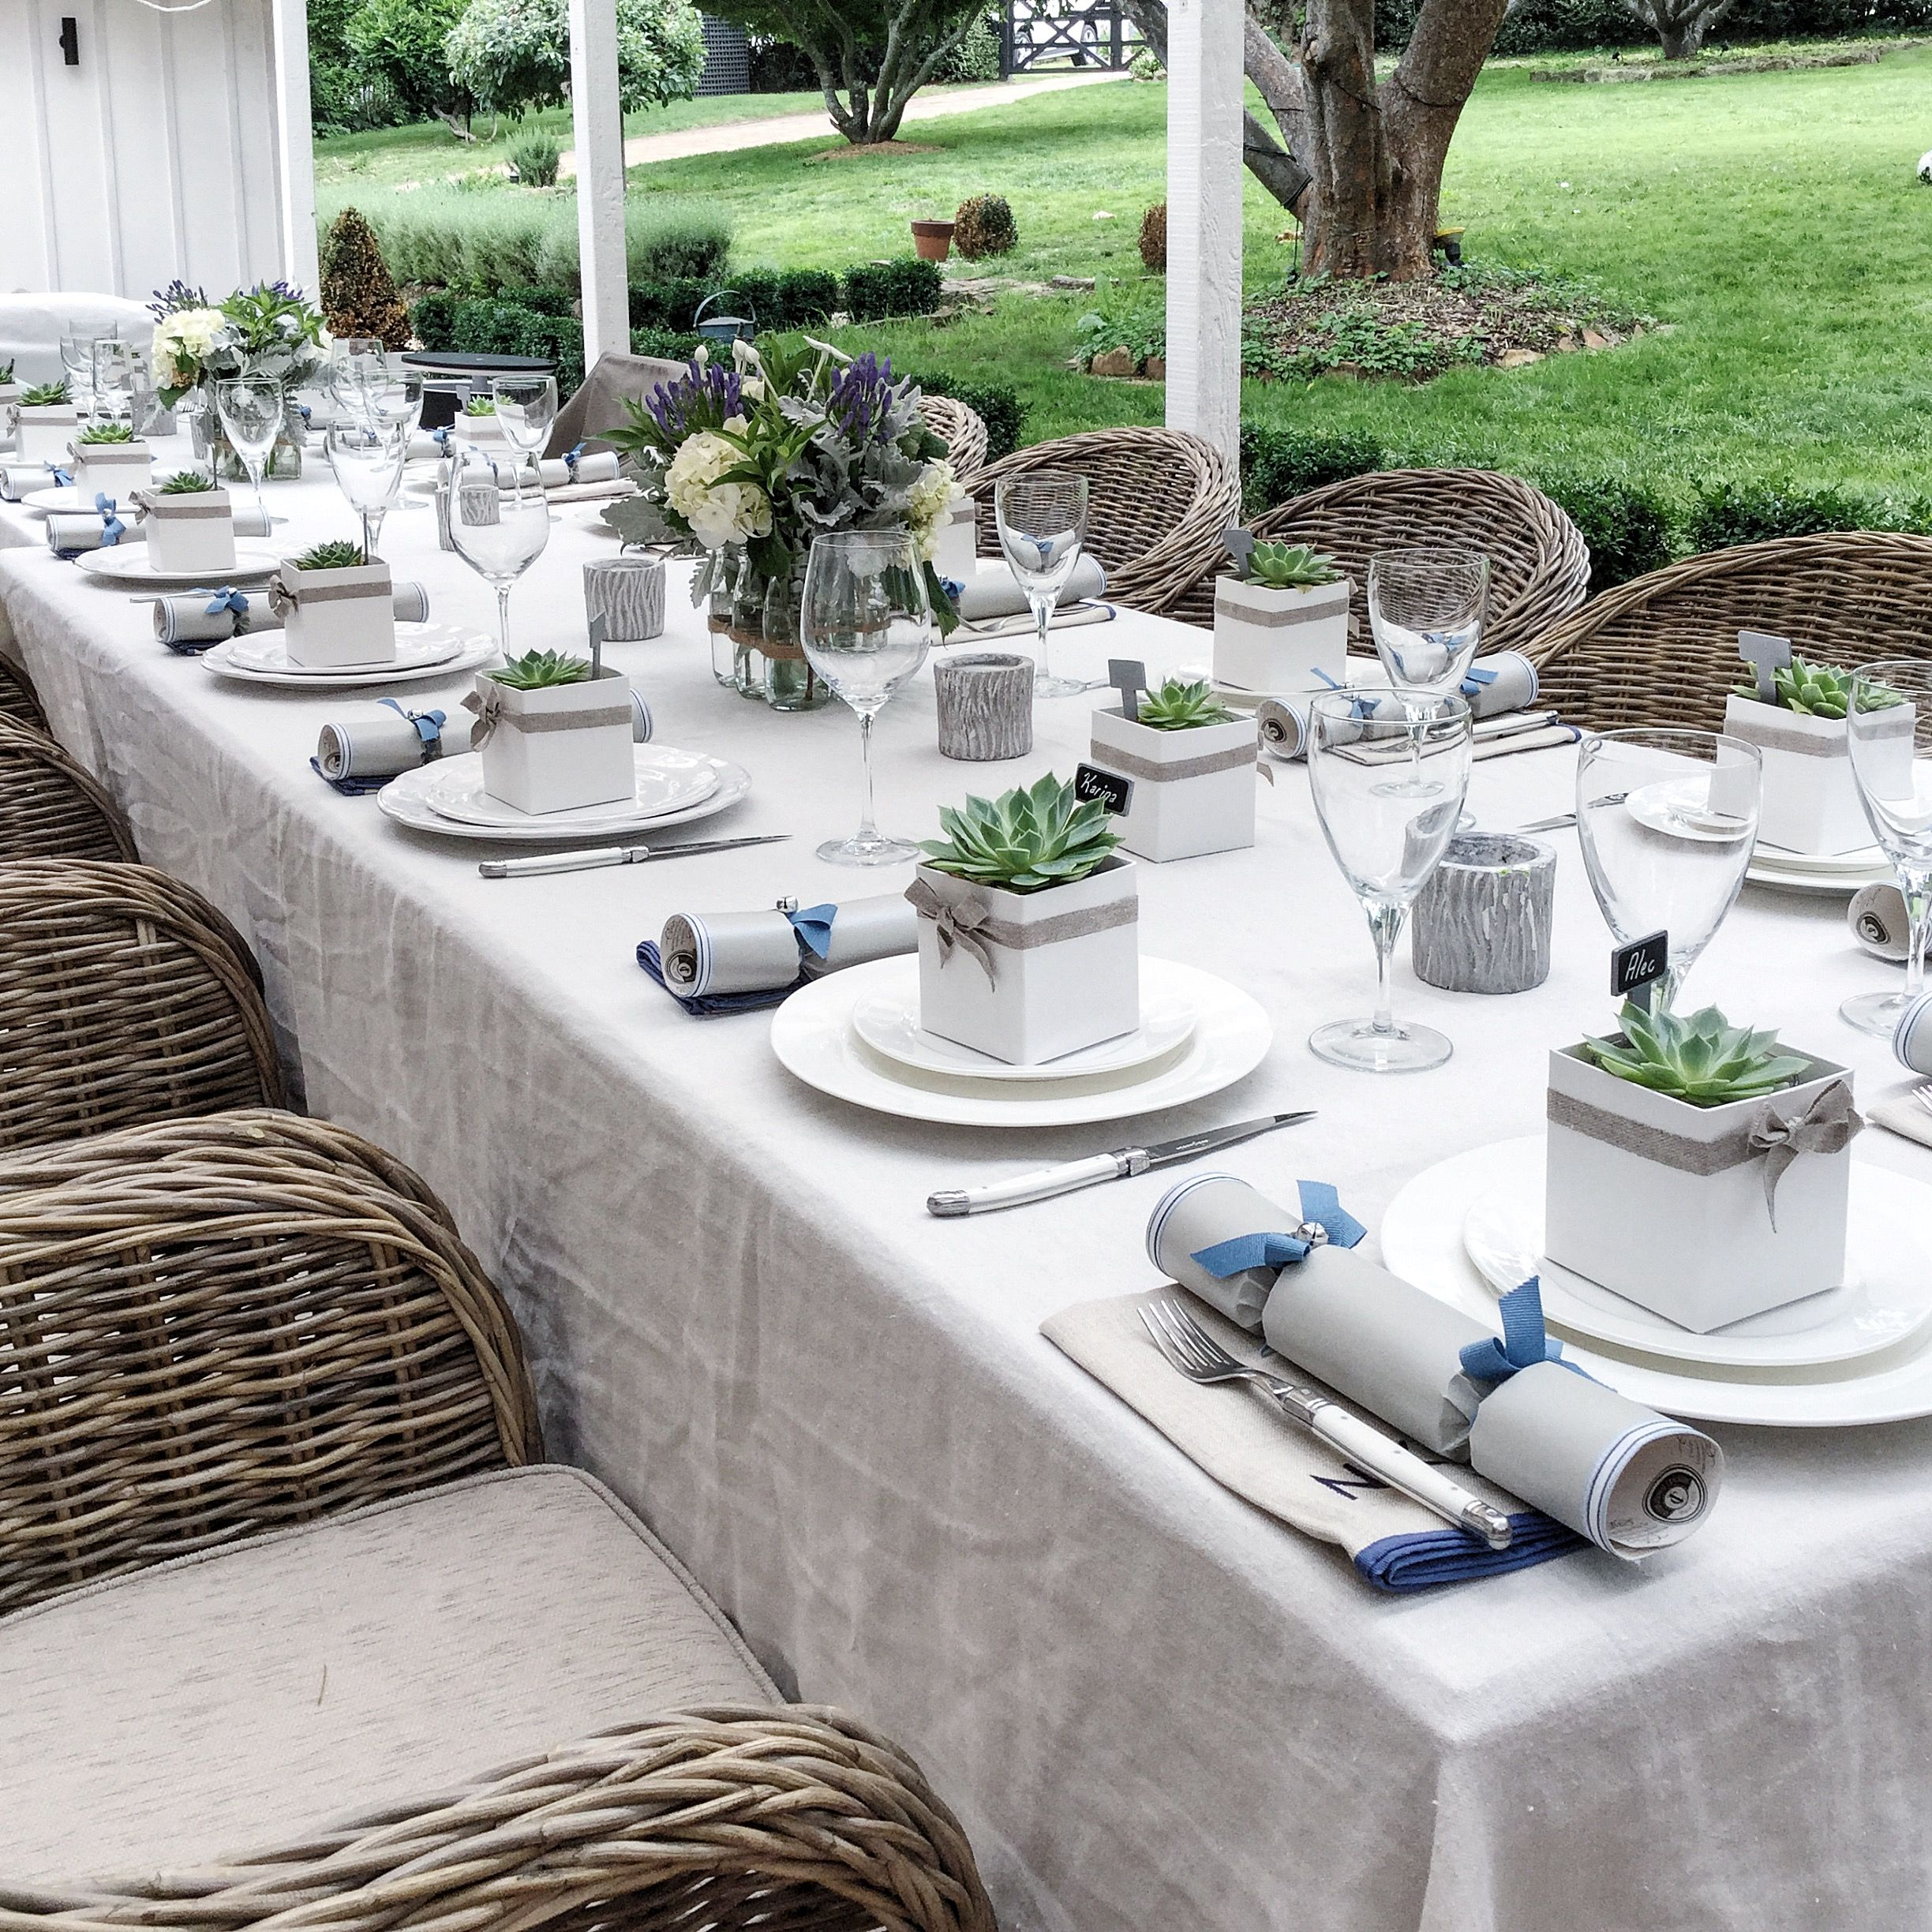 Essentials For Easy Entertaining Christmas Table Settings Xmas Table Decorations Outdoor Table Decor